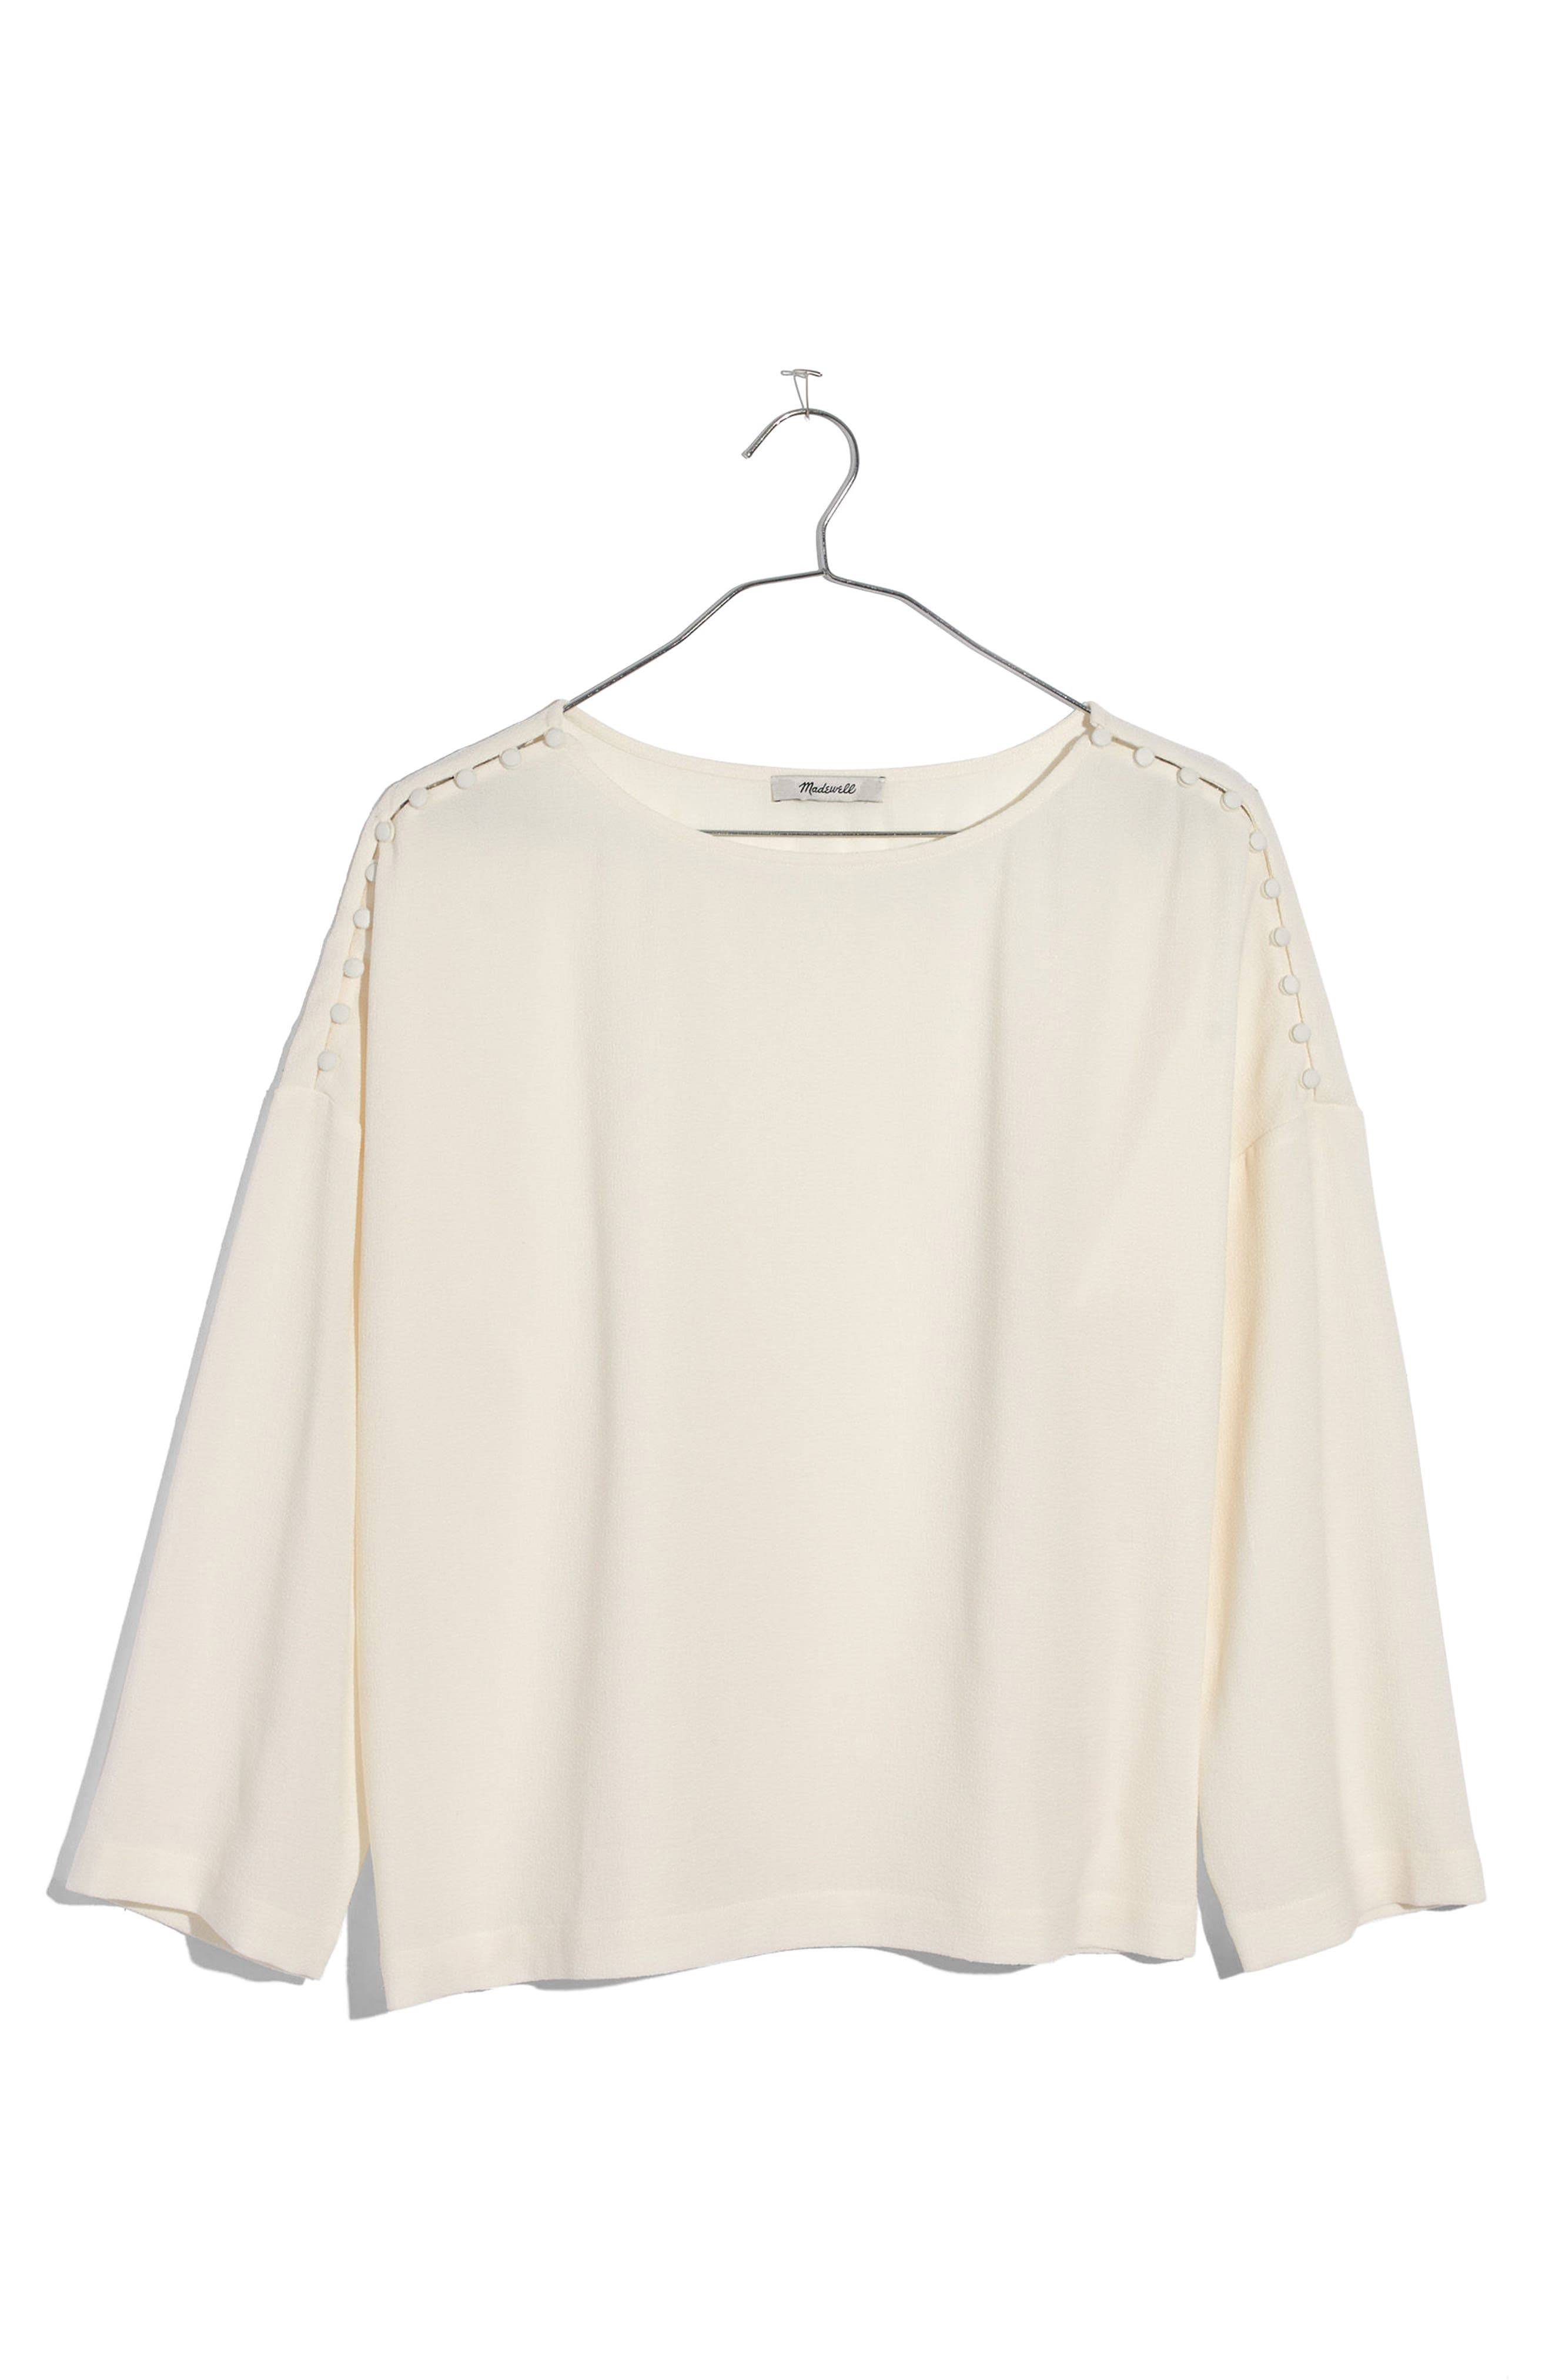 Alternate Image 1 Selected - Madewell Button Shoulder Crepe Top